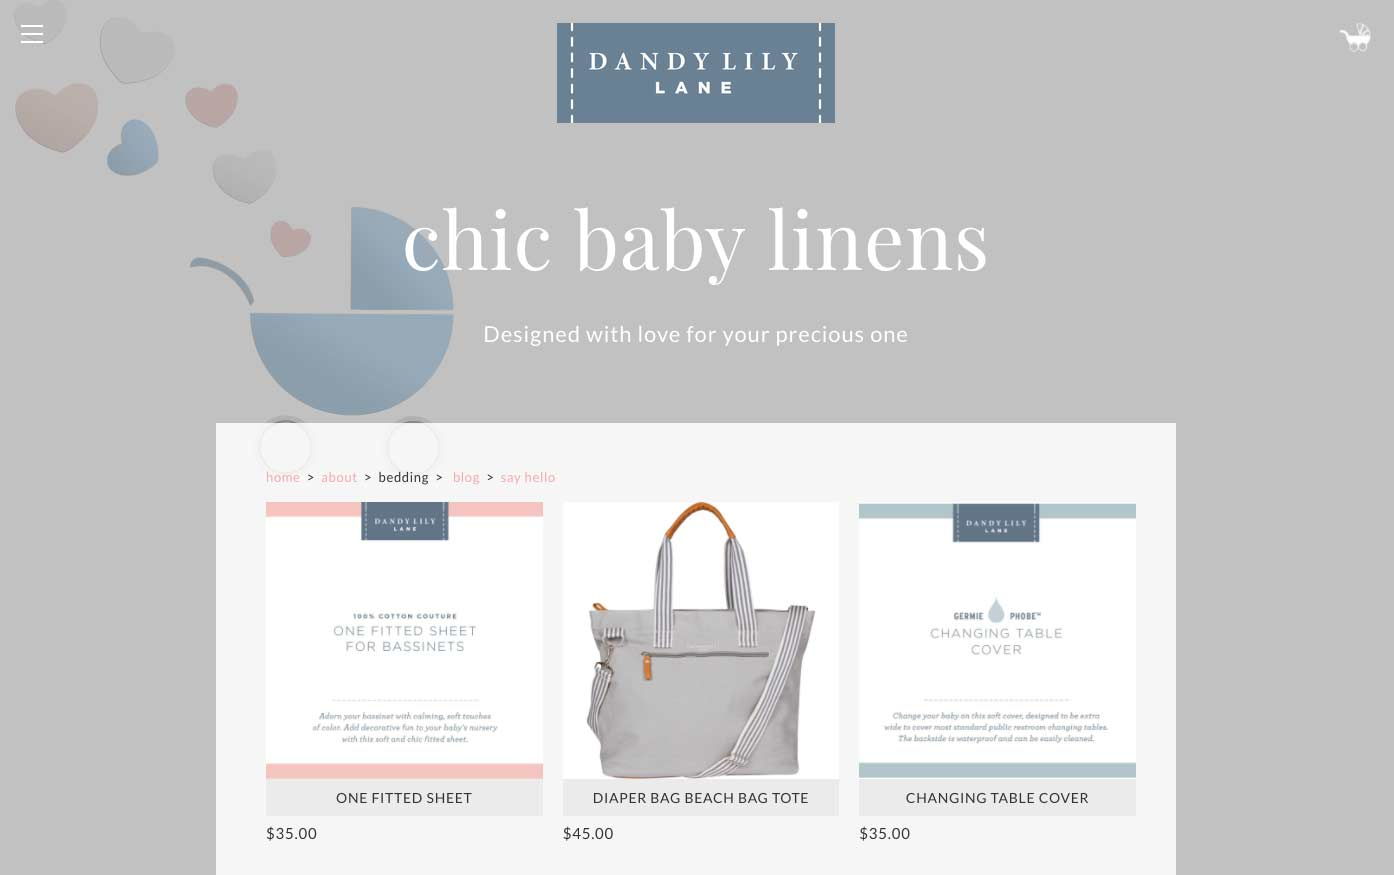 Dandy Lily Lane Baby Accessories by Chic Baby Linens